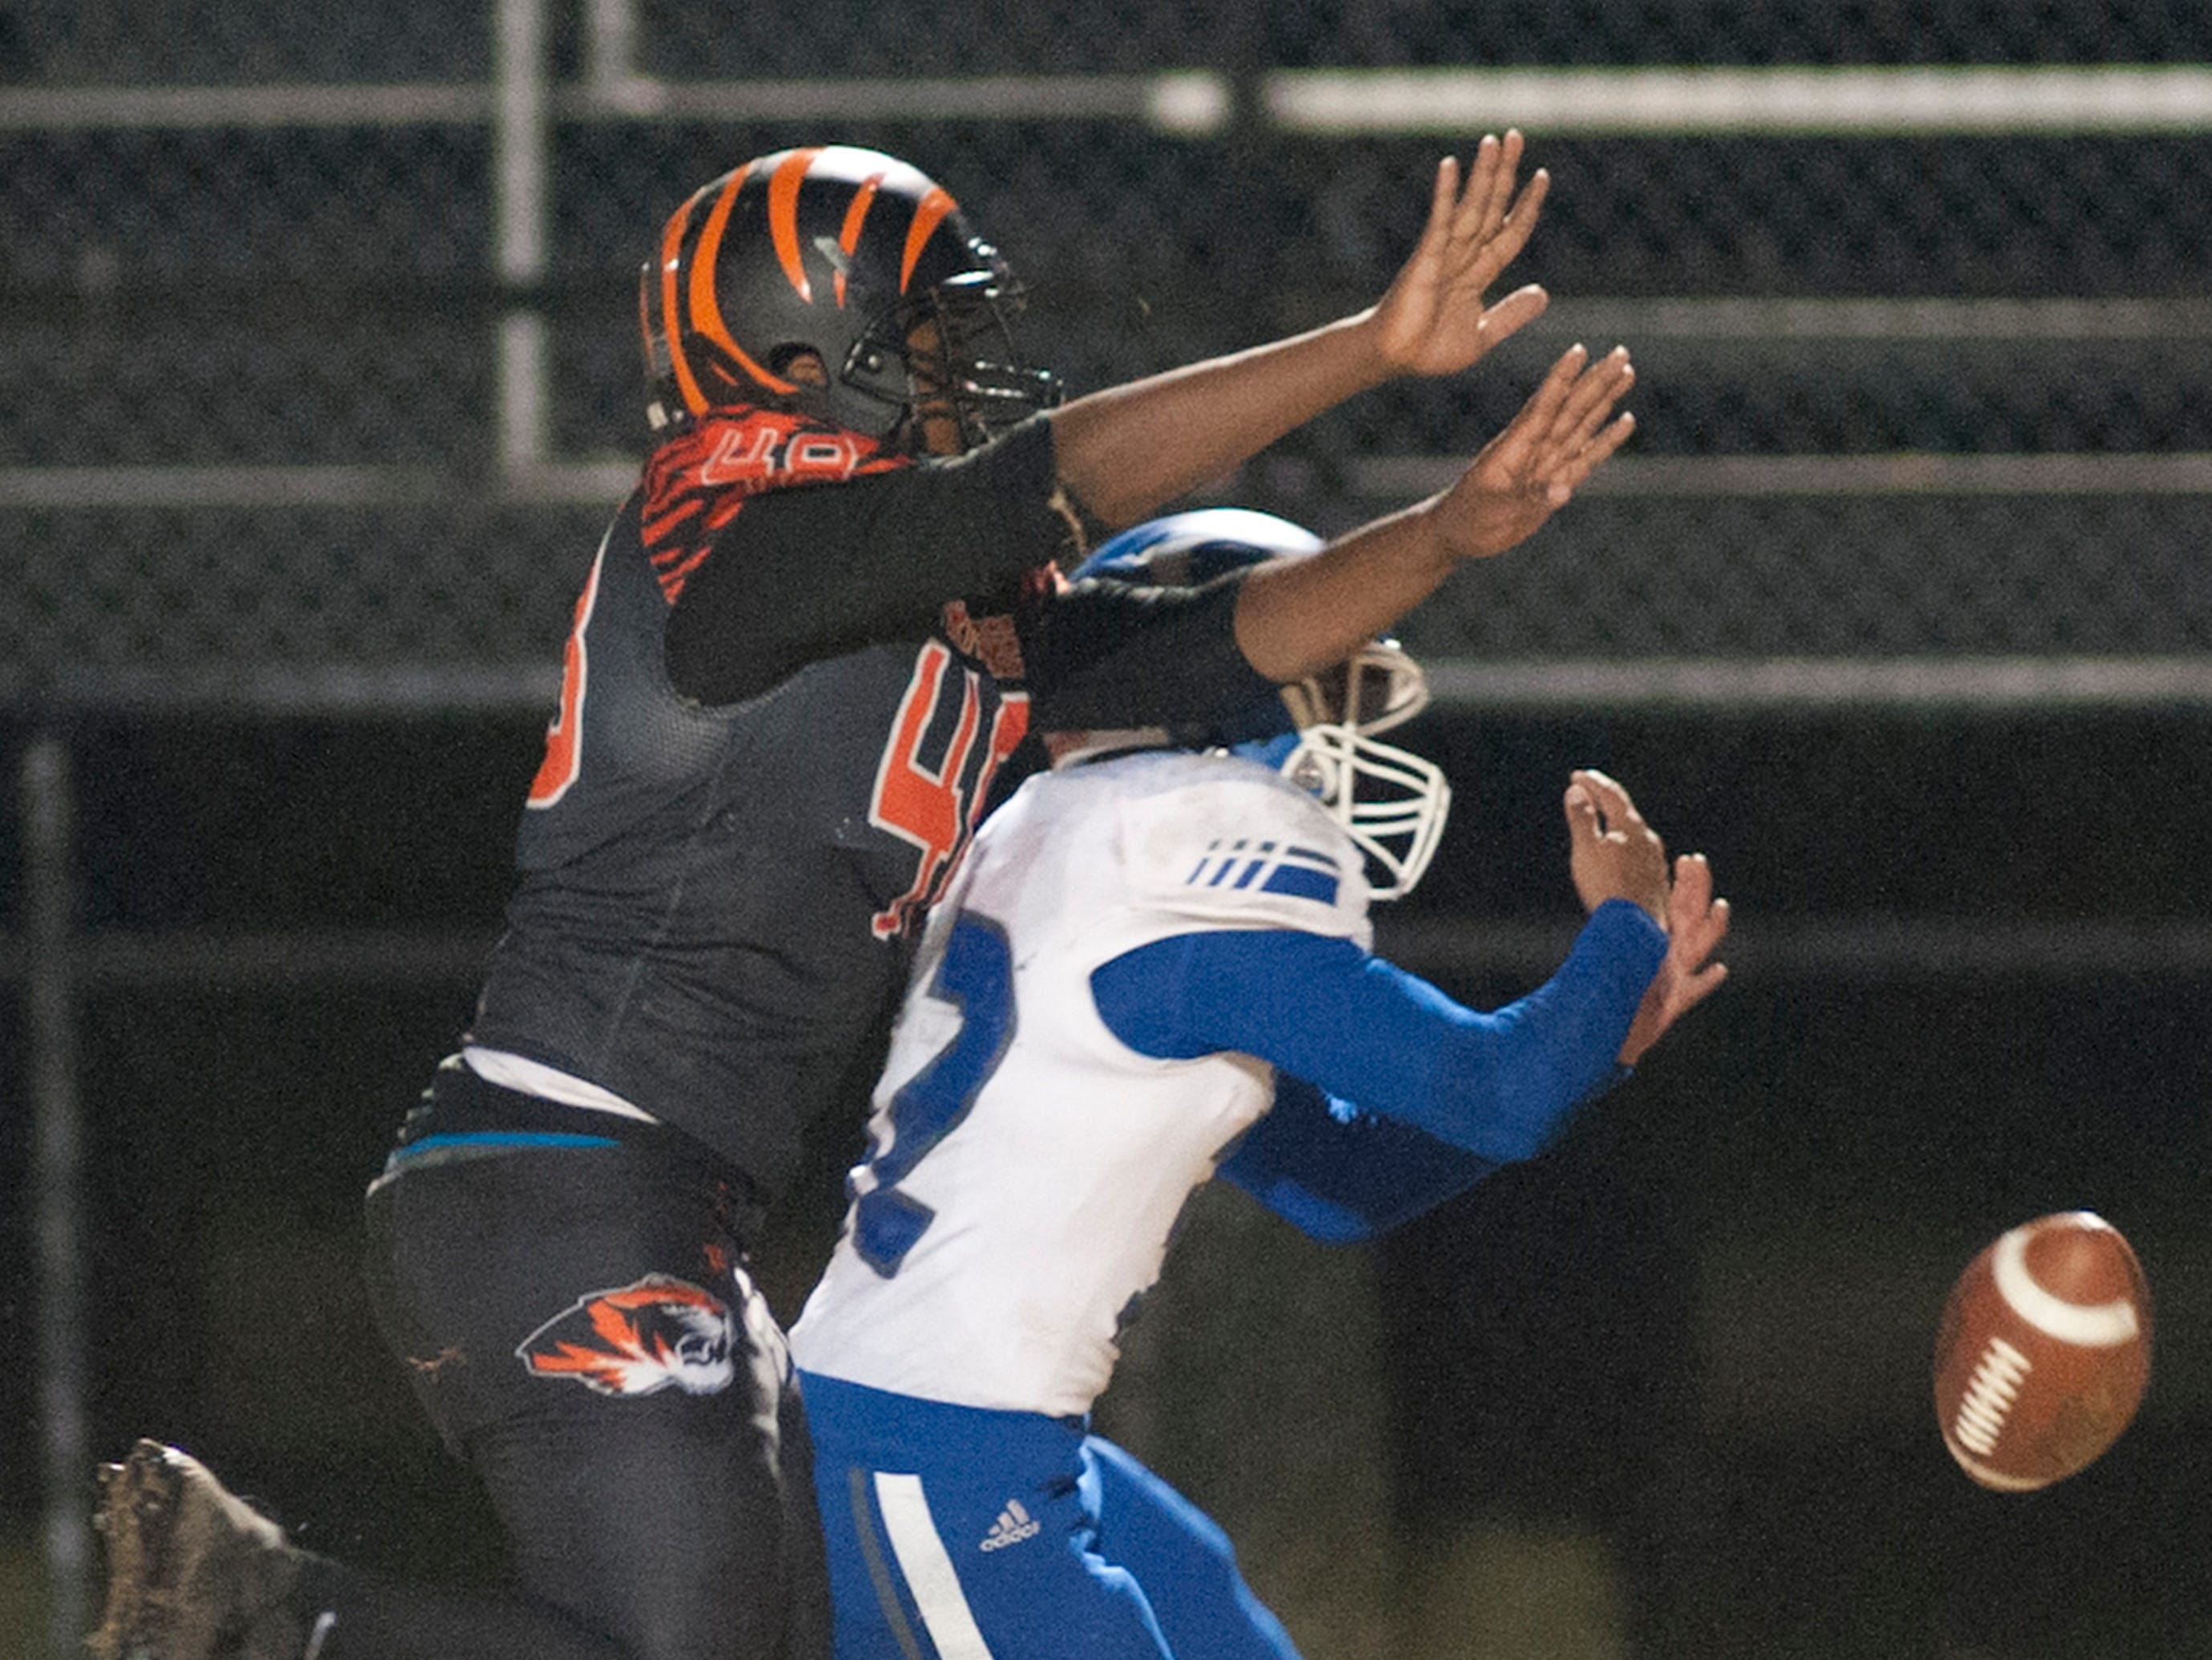 Fern Creek linebacker Larry Holt knocks the ball out of the hands of Oldham County's Lucas Jones. Nov. 9, 2018